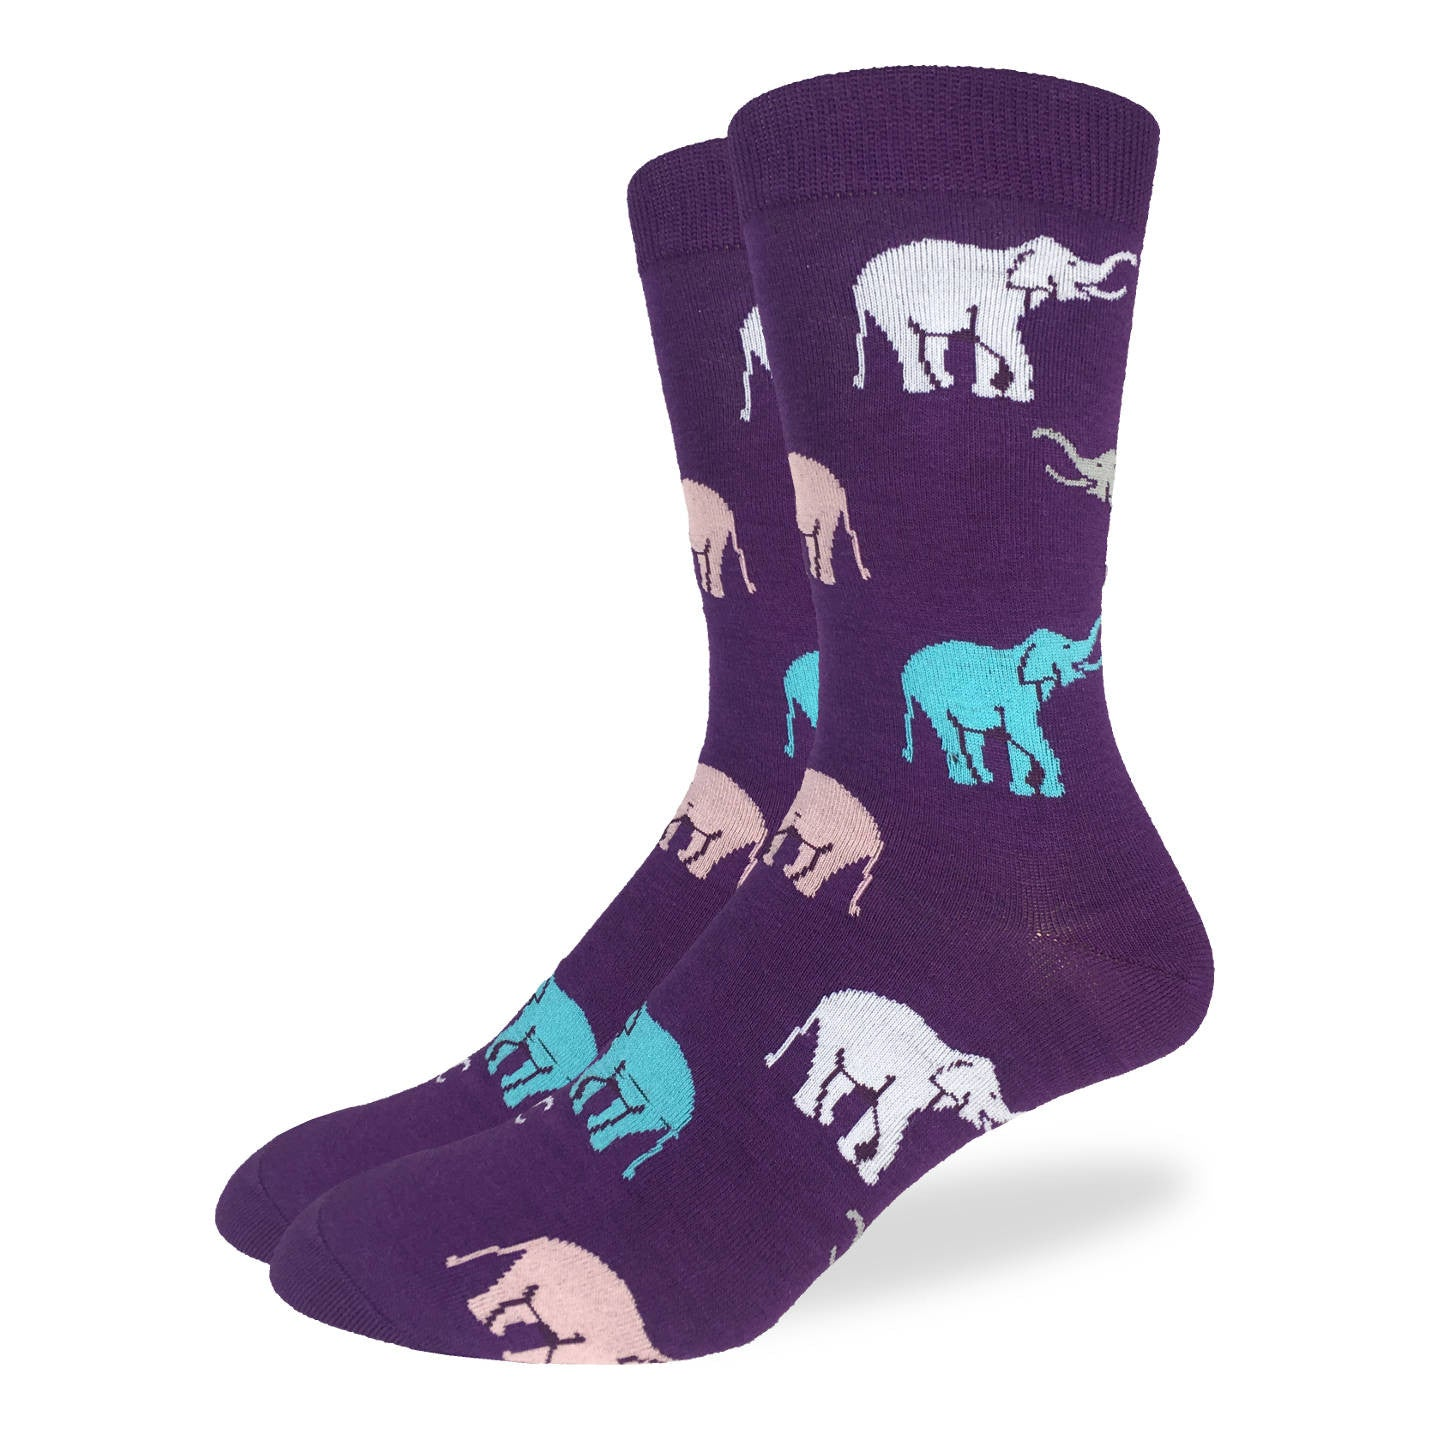 Men's Purple Elephants Socks - Good Luck Sock